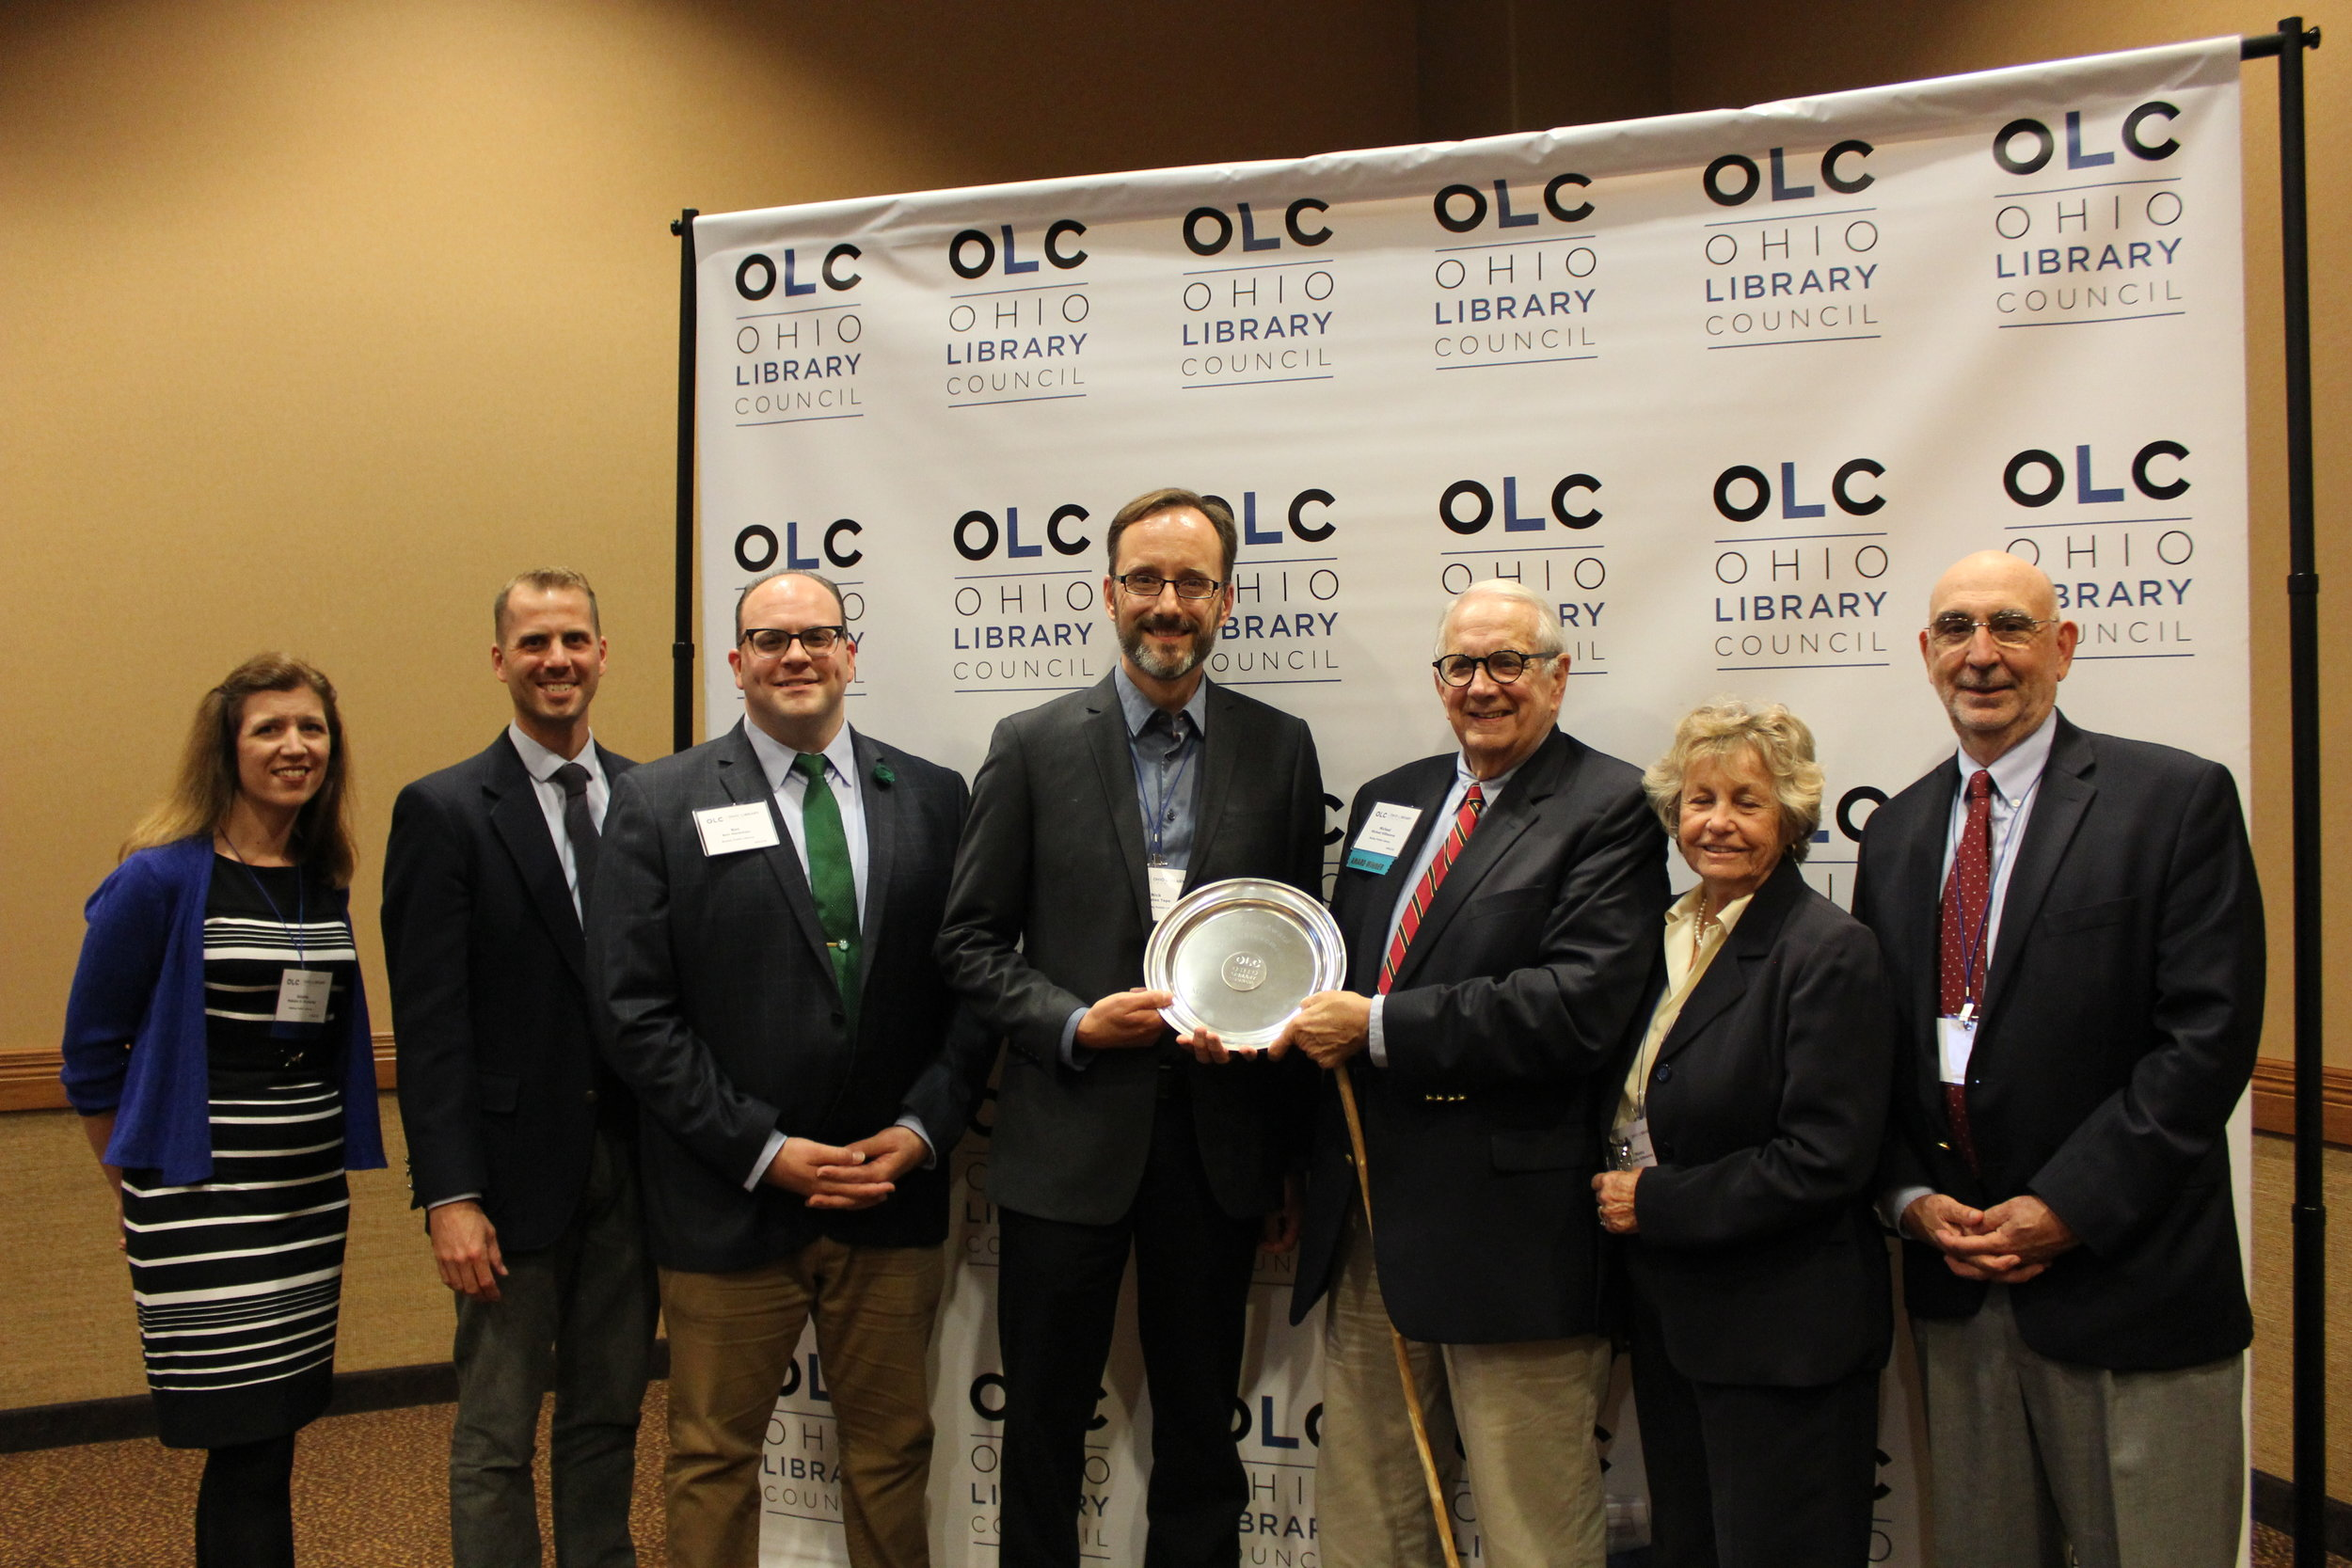 Bexley Public Library trustee Michael Kilbourne has been named by the Ohio Library Council as Trustee of the Year. He was honored during the Ohio Library Council's Awards and Honors Luncheon on Wednesday, October 3, at the Kalahari Resort and Convention Center in Sandusky,Ohio